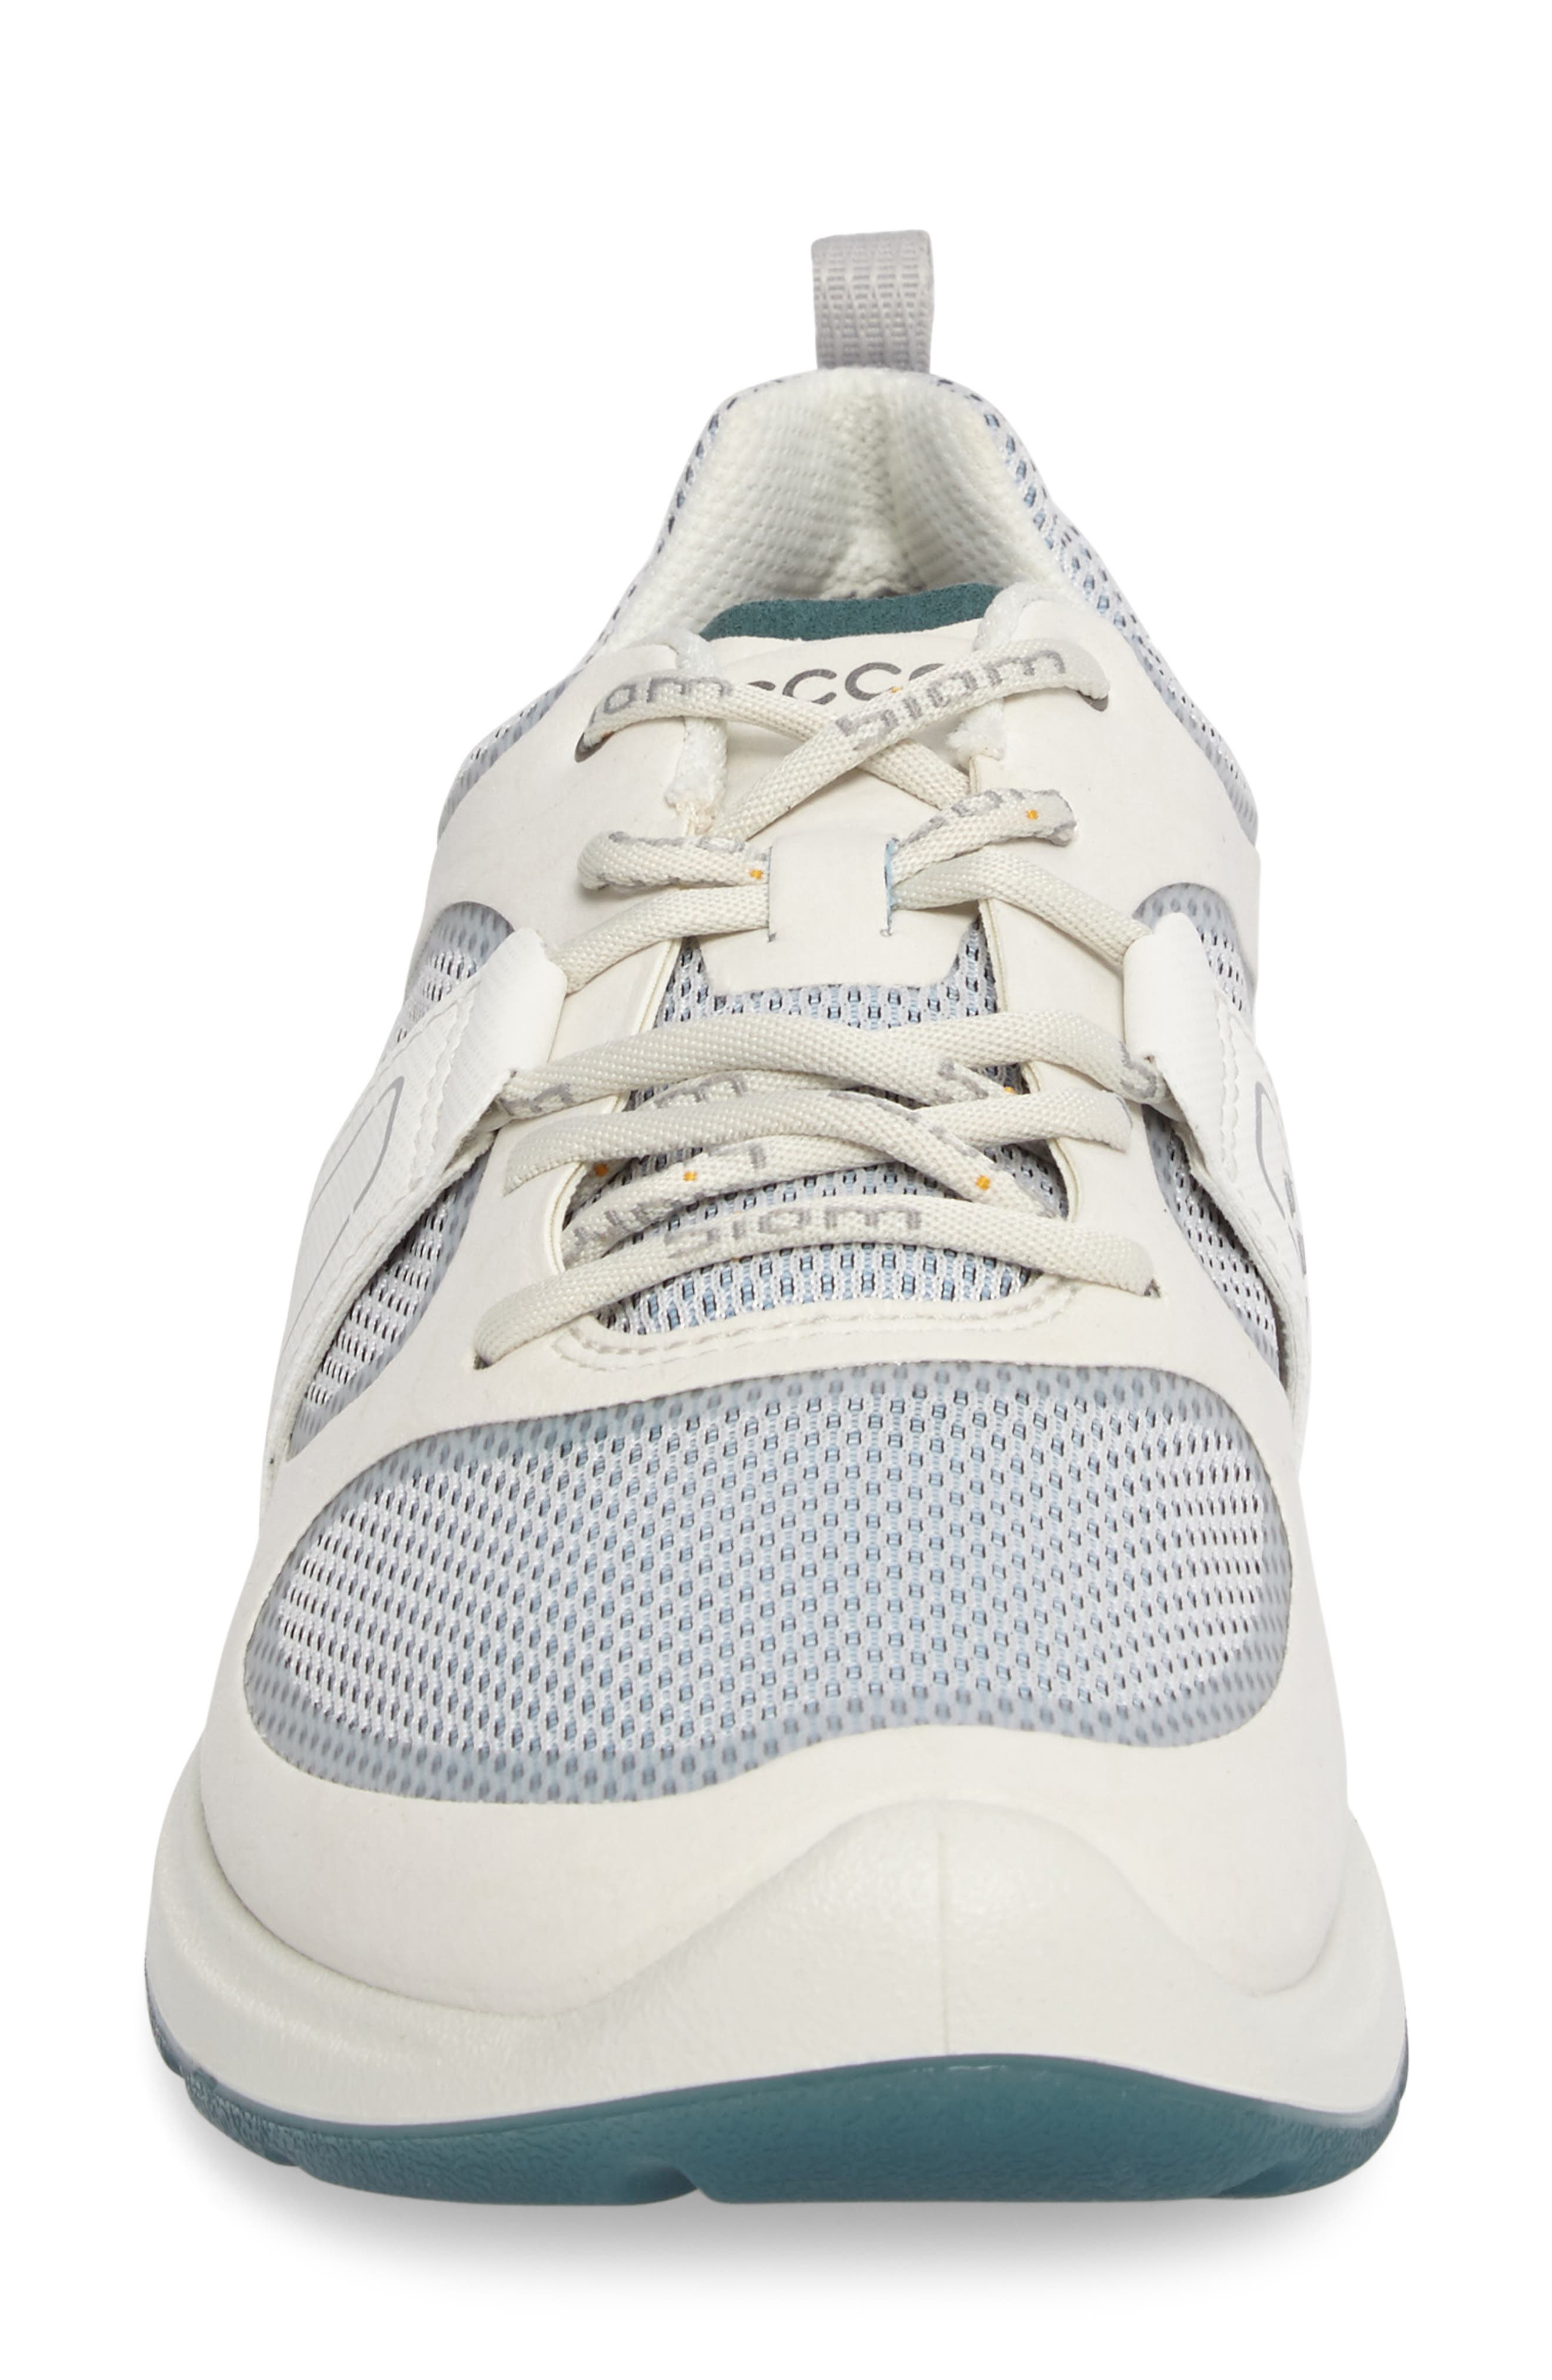 BIOM Amrap Sneaker,                             Alternate thumbnail 4, color,                             SHADOW WHITE LEATHER